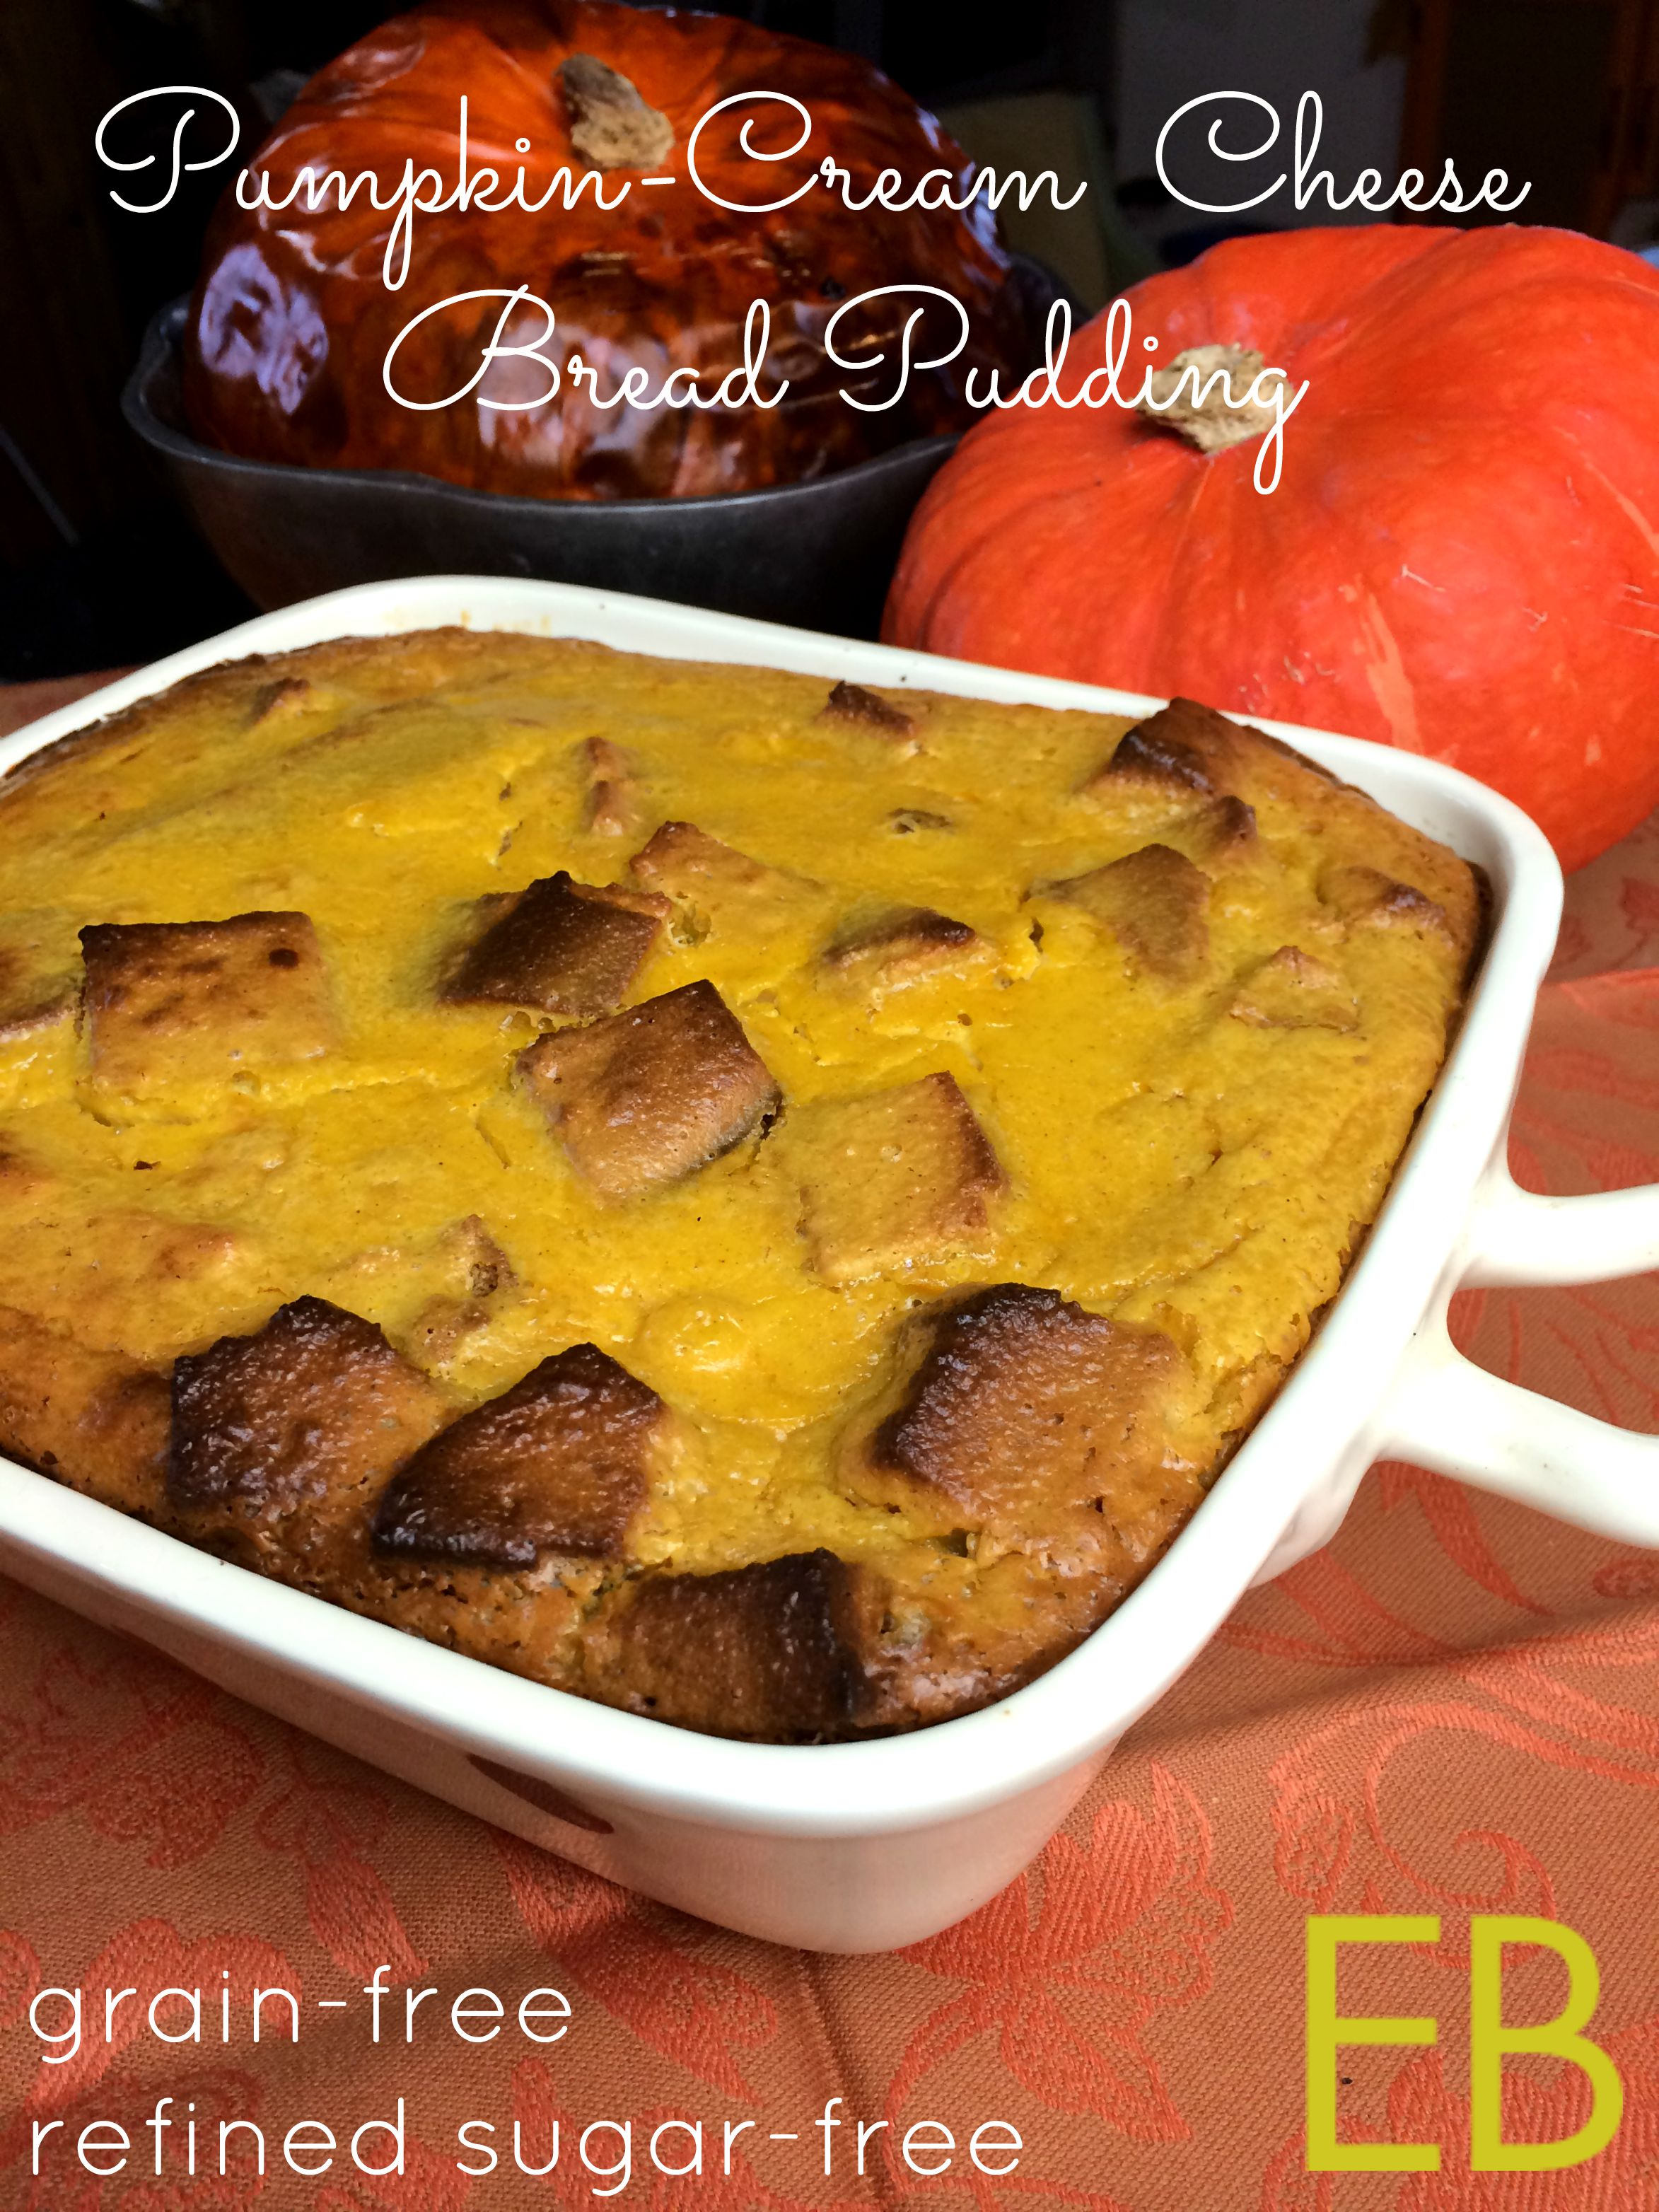 Pumpkin Cream Cheese Bread Pudding